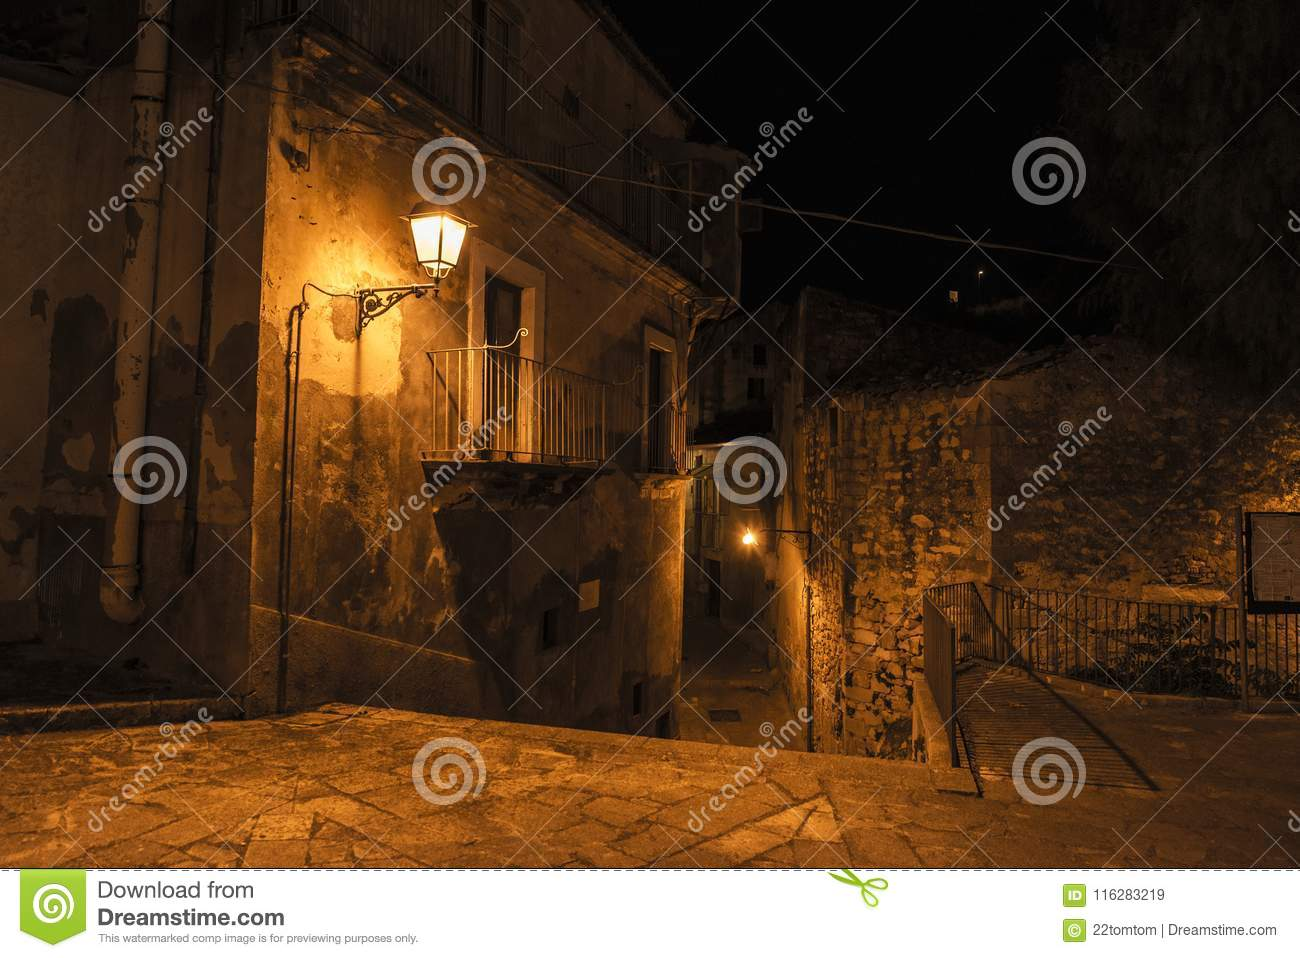 Street of the old town at night in Ragusa, Sicily, Italy